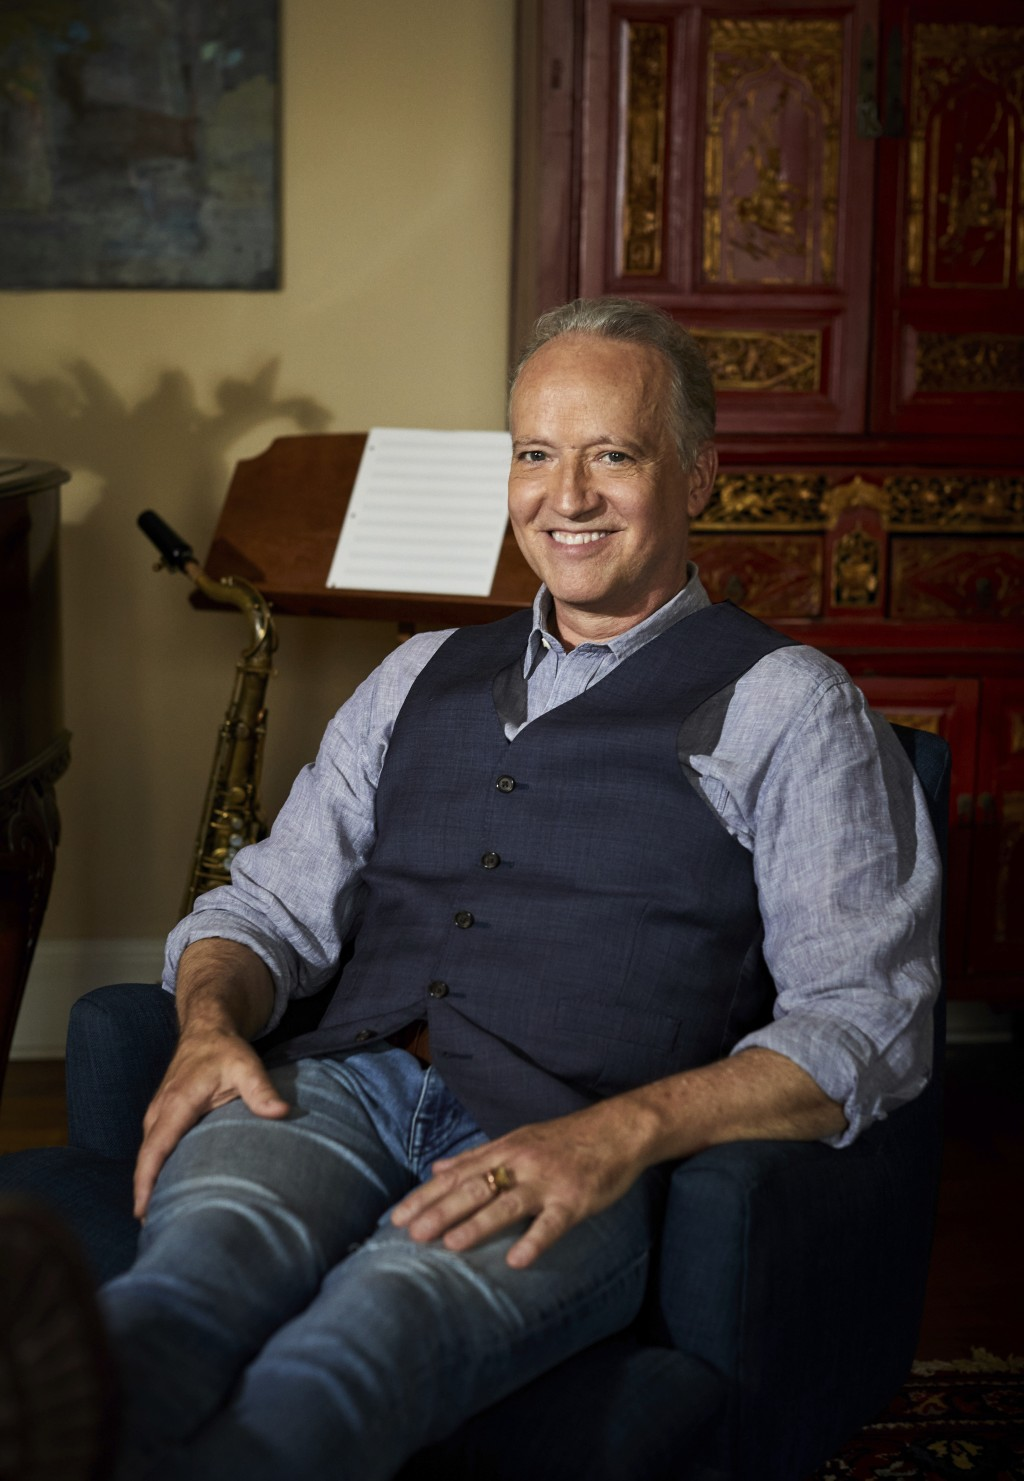 Grammy-winning jazz saxophonist-composer Ted Nash poses for a portrait in New York on May 4, 2021. Nash is releasing an album with actress Glenn Close...